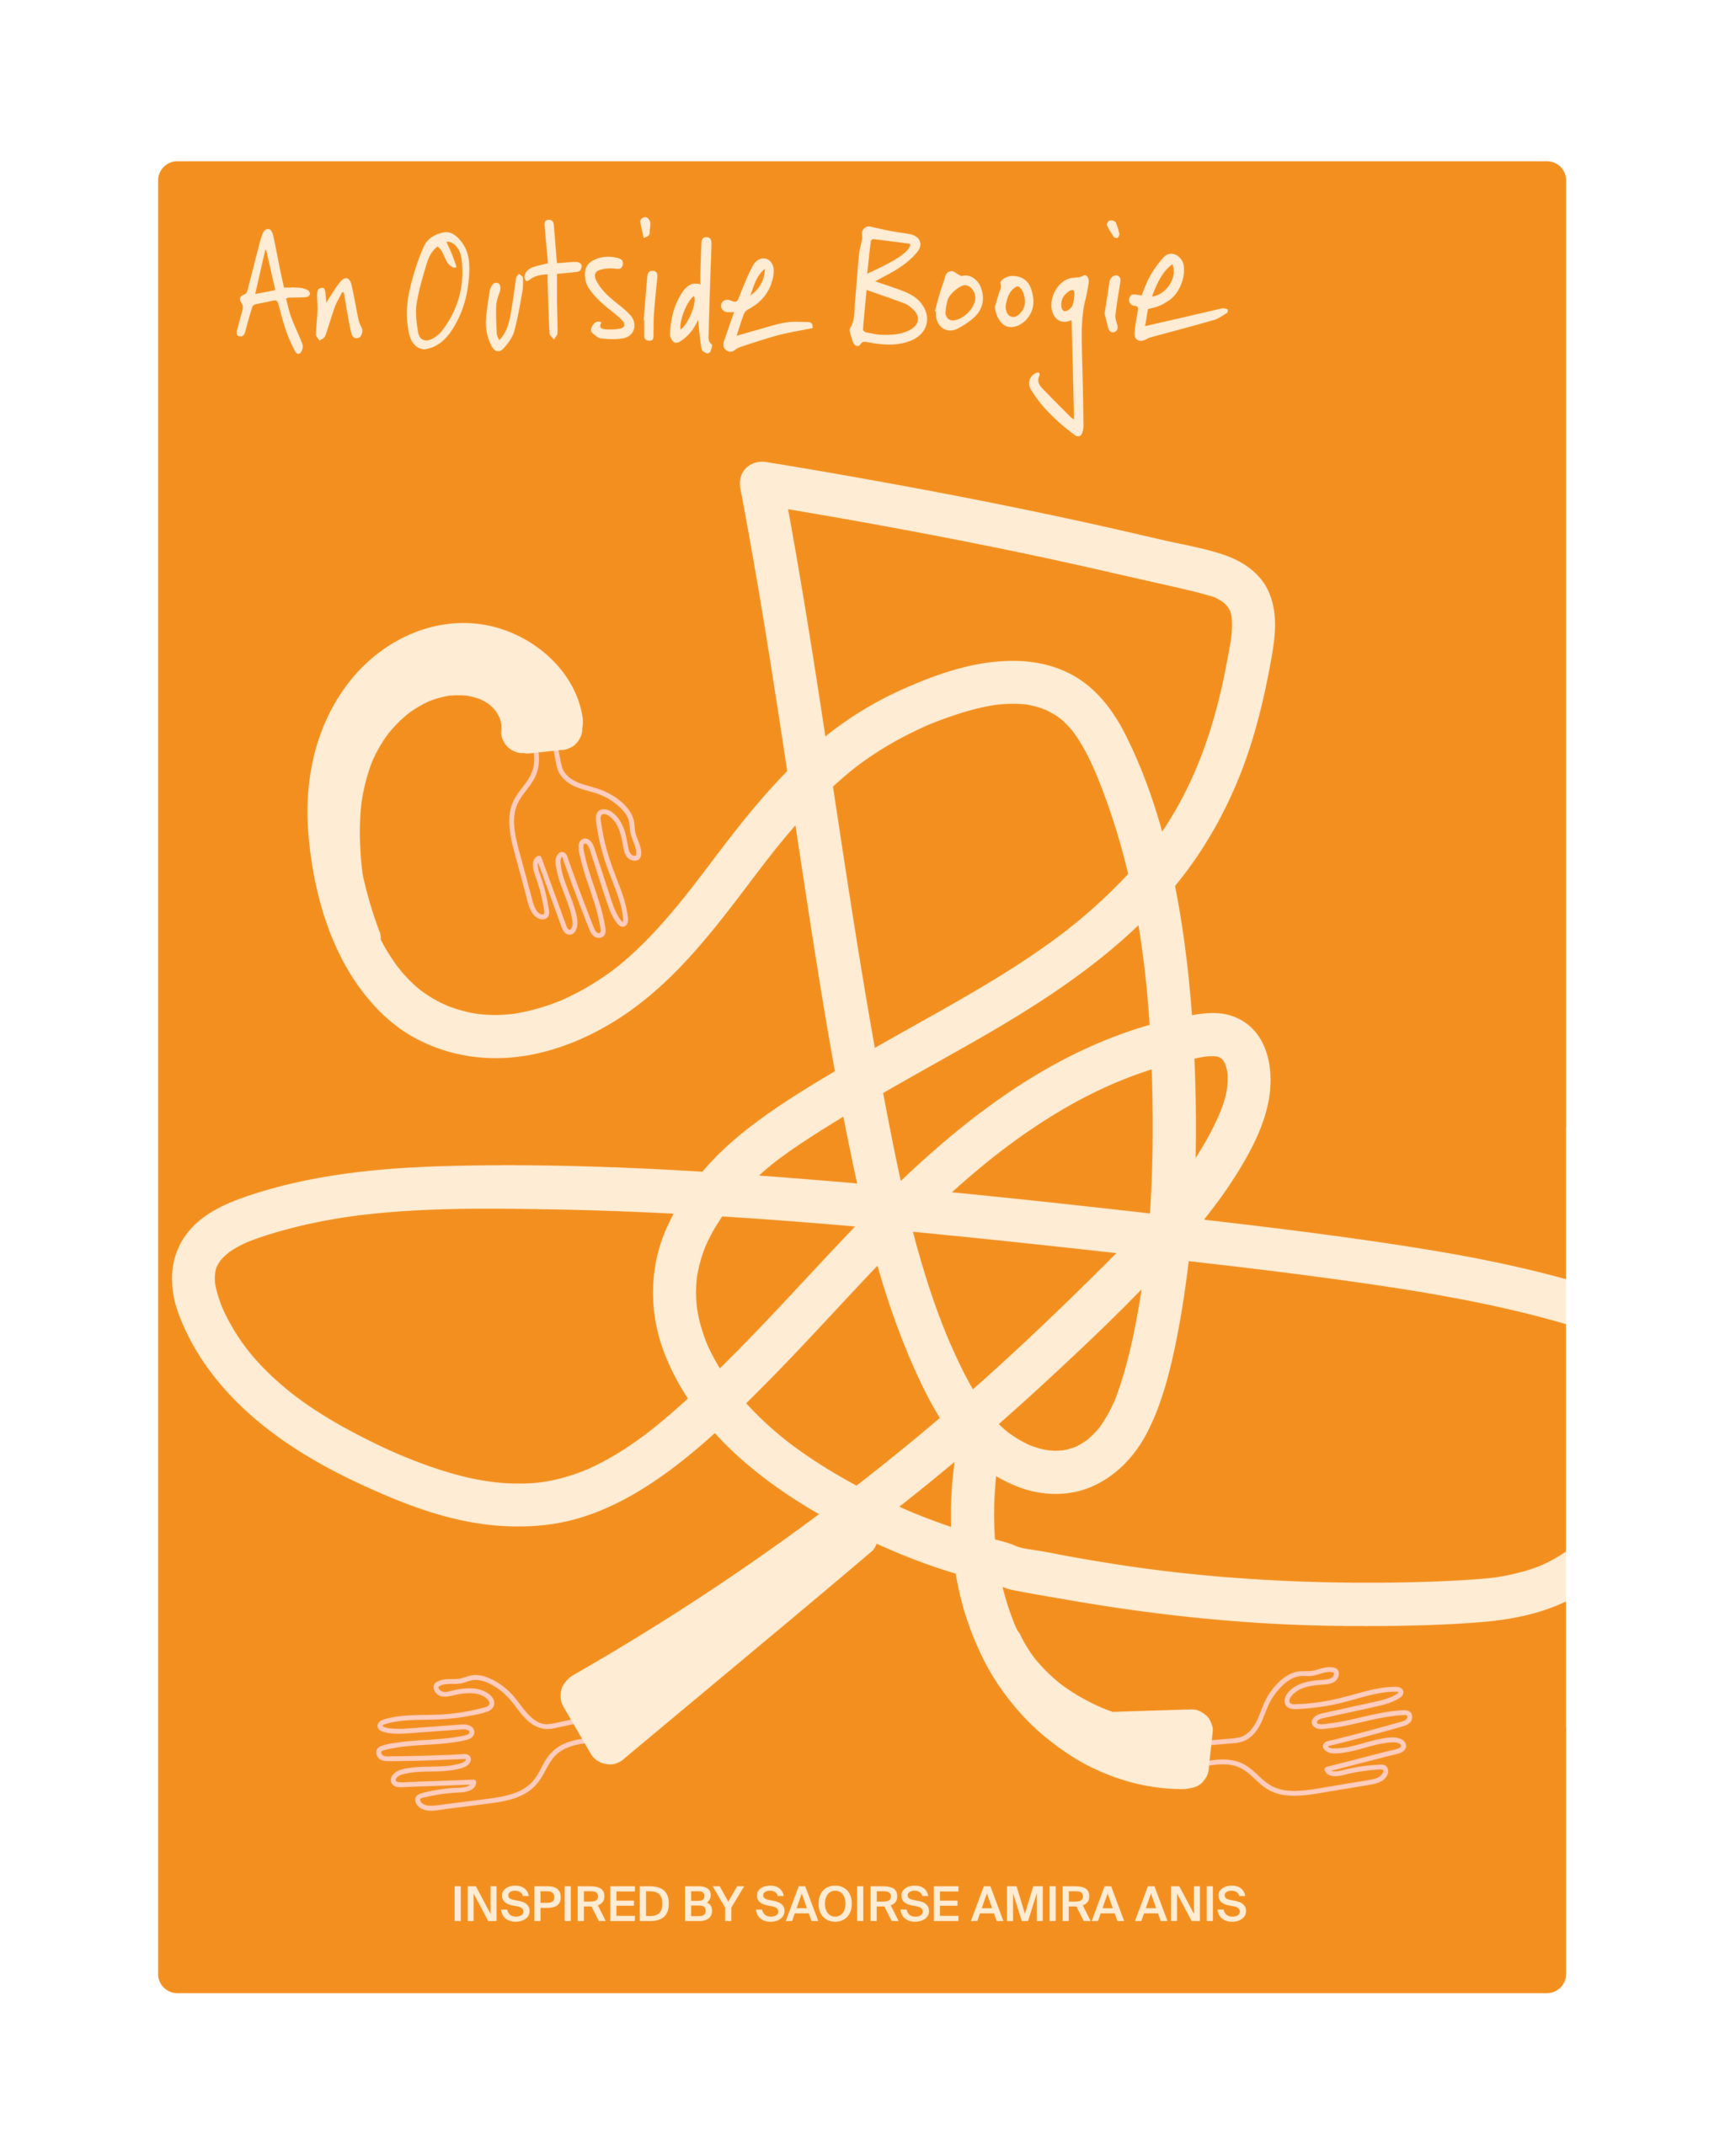 An Outside Boogie